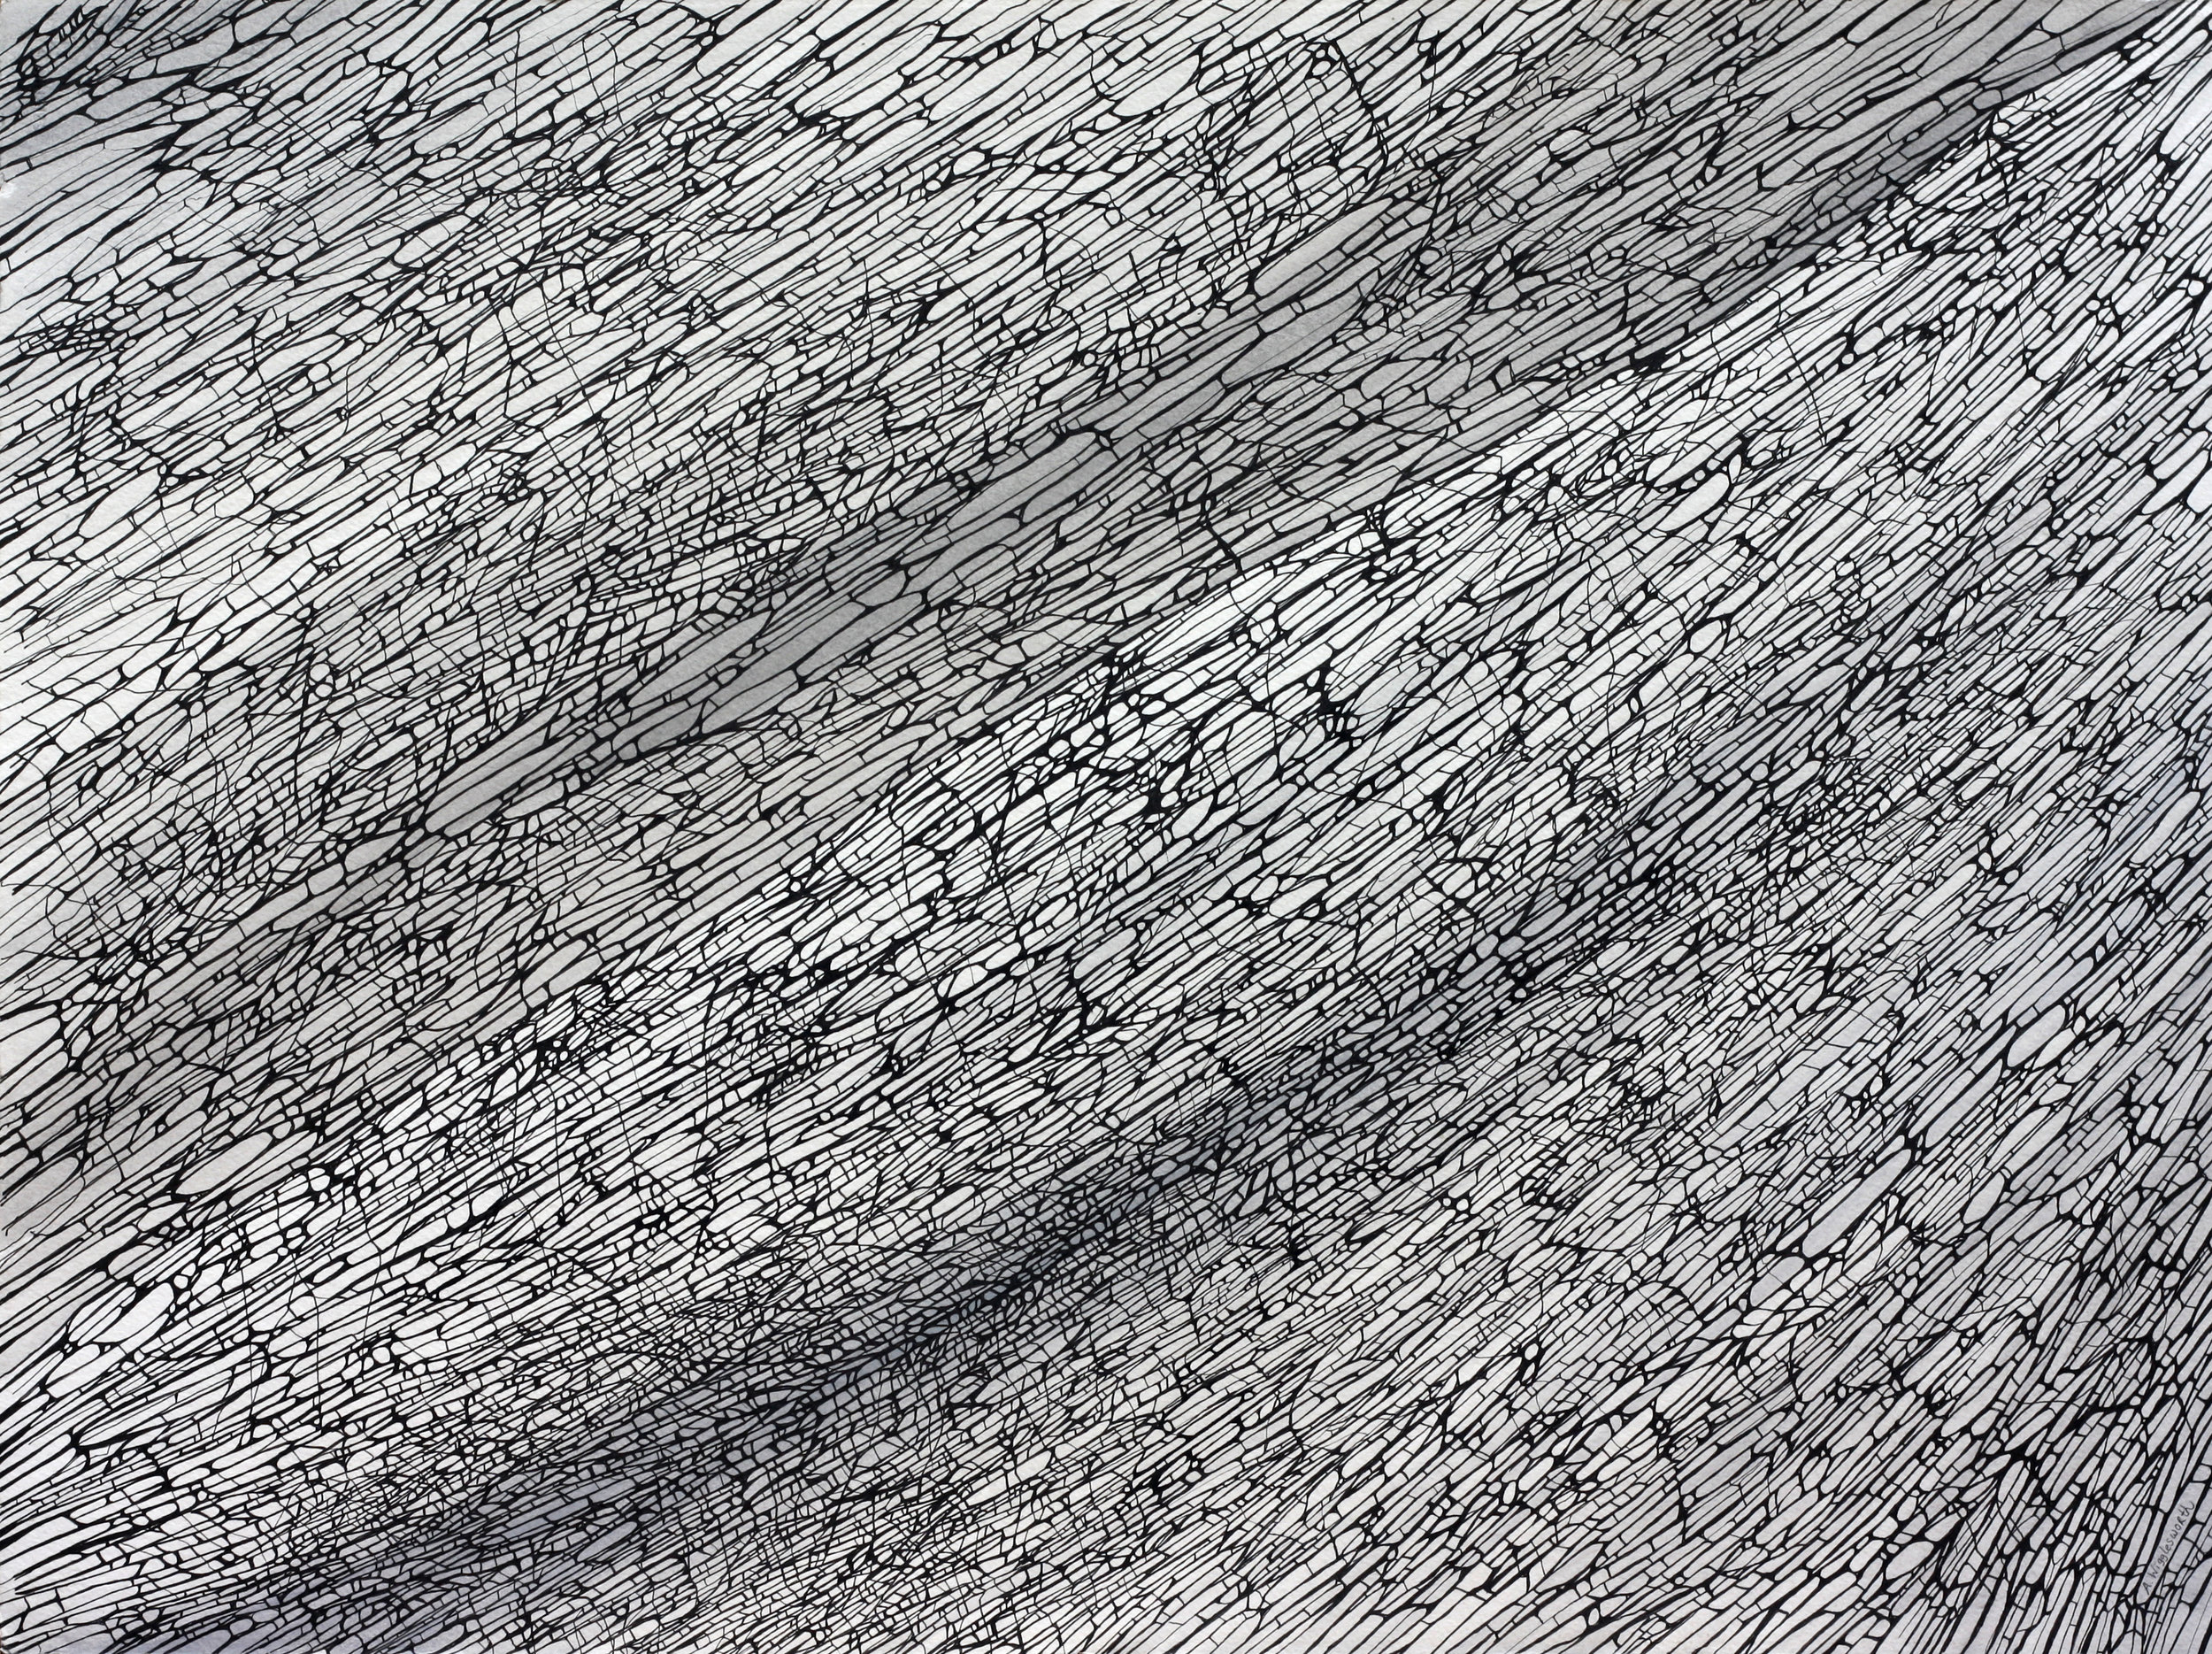 Divergence  Ink on paper 56 cm x 76 cm © Anthony Wigglesworth - All Rights Reserved